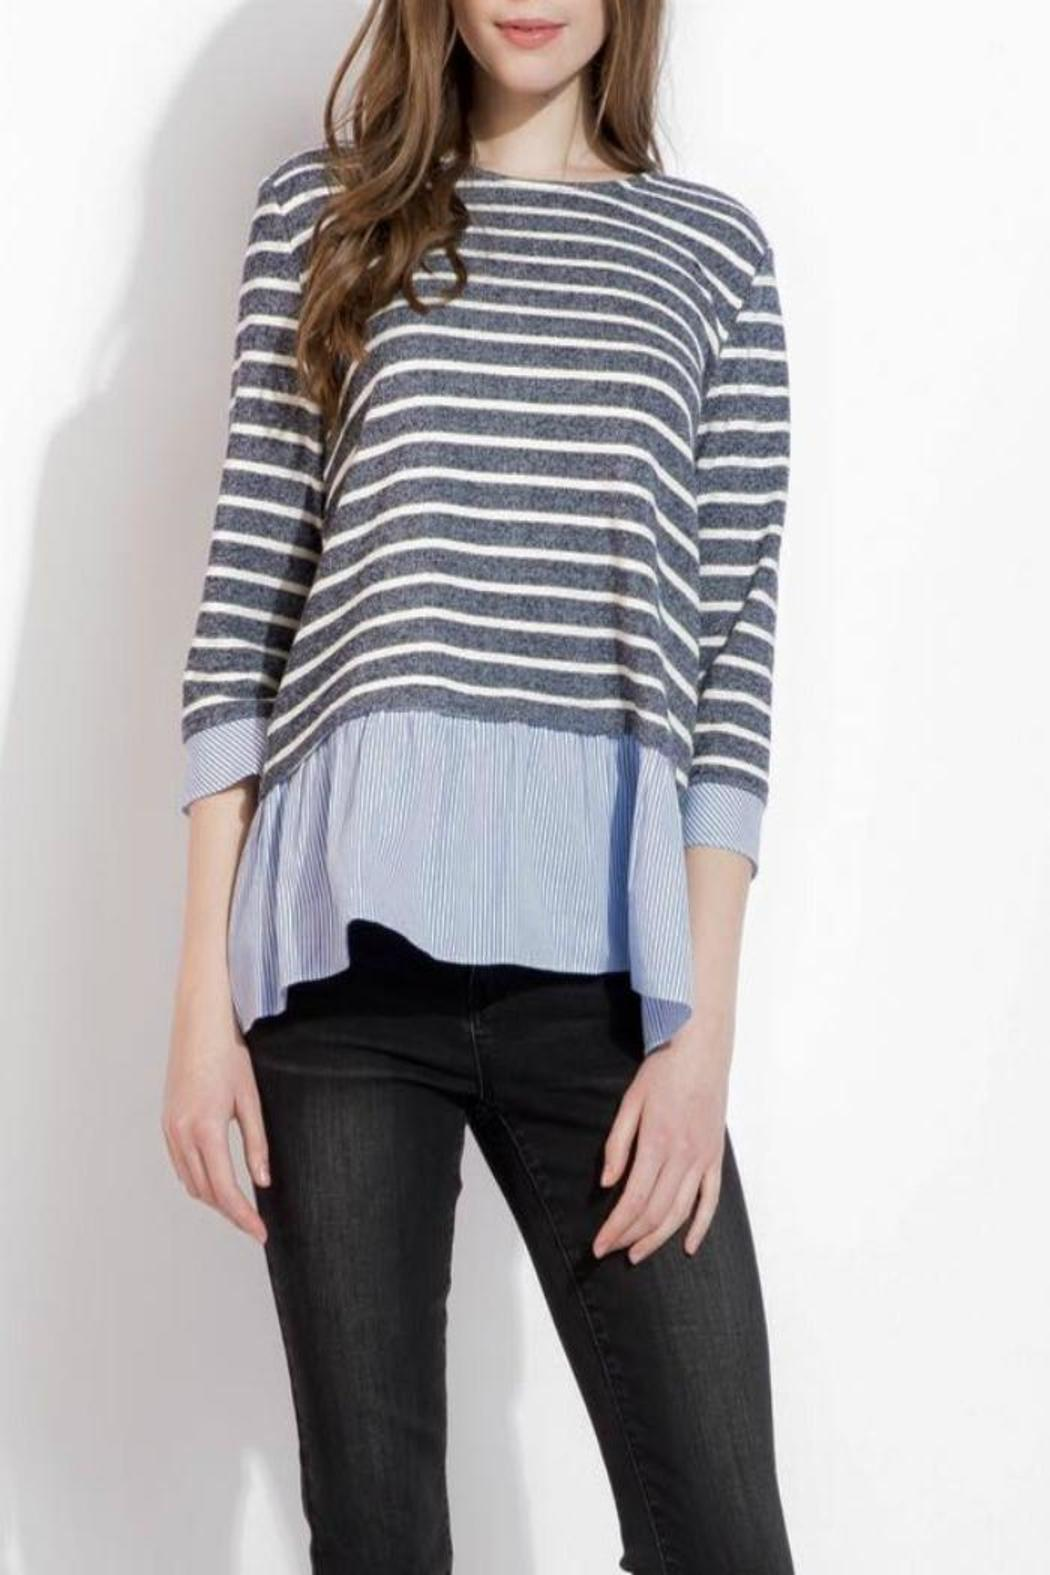 THML Clothing Spring Stripes Top - Main Image